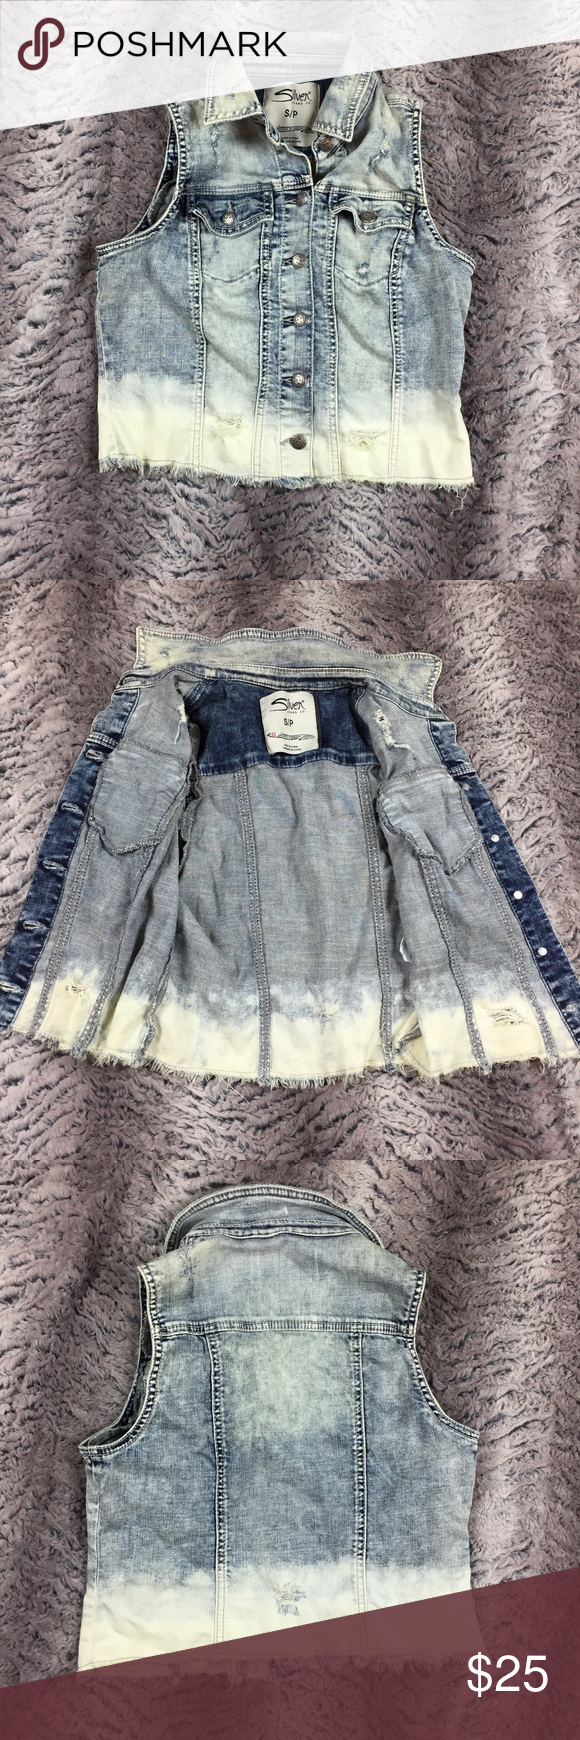 Silver Jeans Denim Vest Ombre Women's Size S/P For grabs is a Silver Jeans Denim Ombré Jacket women's size S\P. The item has been inspected for any imperfections and is in excellent preowned condition. Please see pictures for measurements and exact condition. Silver Jeans Jackets & Coats Vests